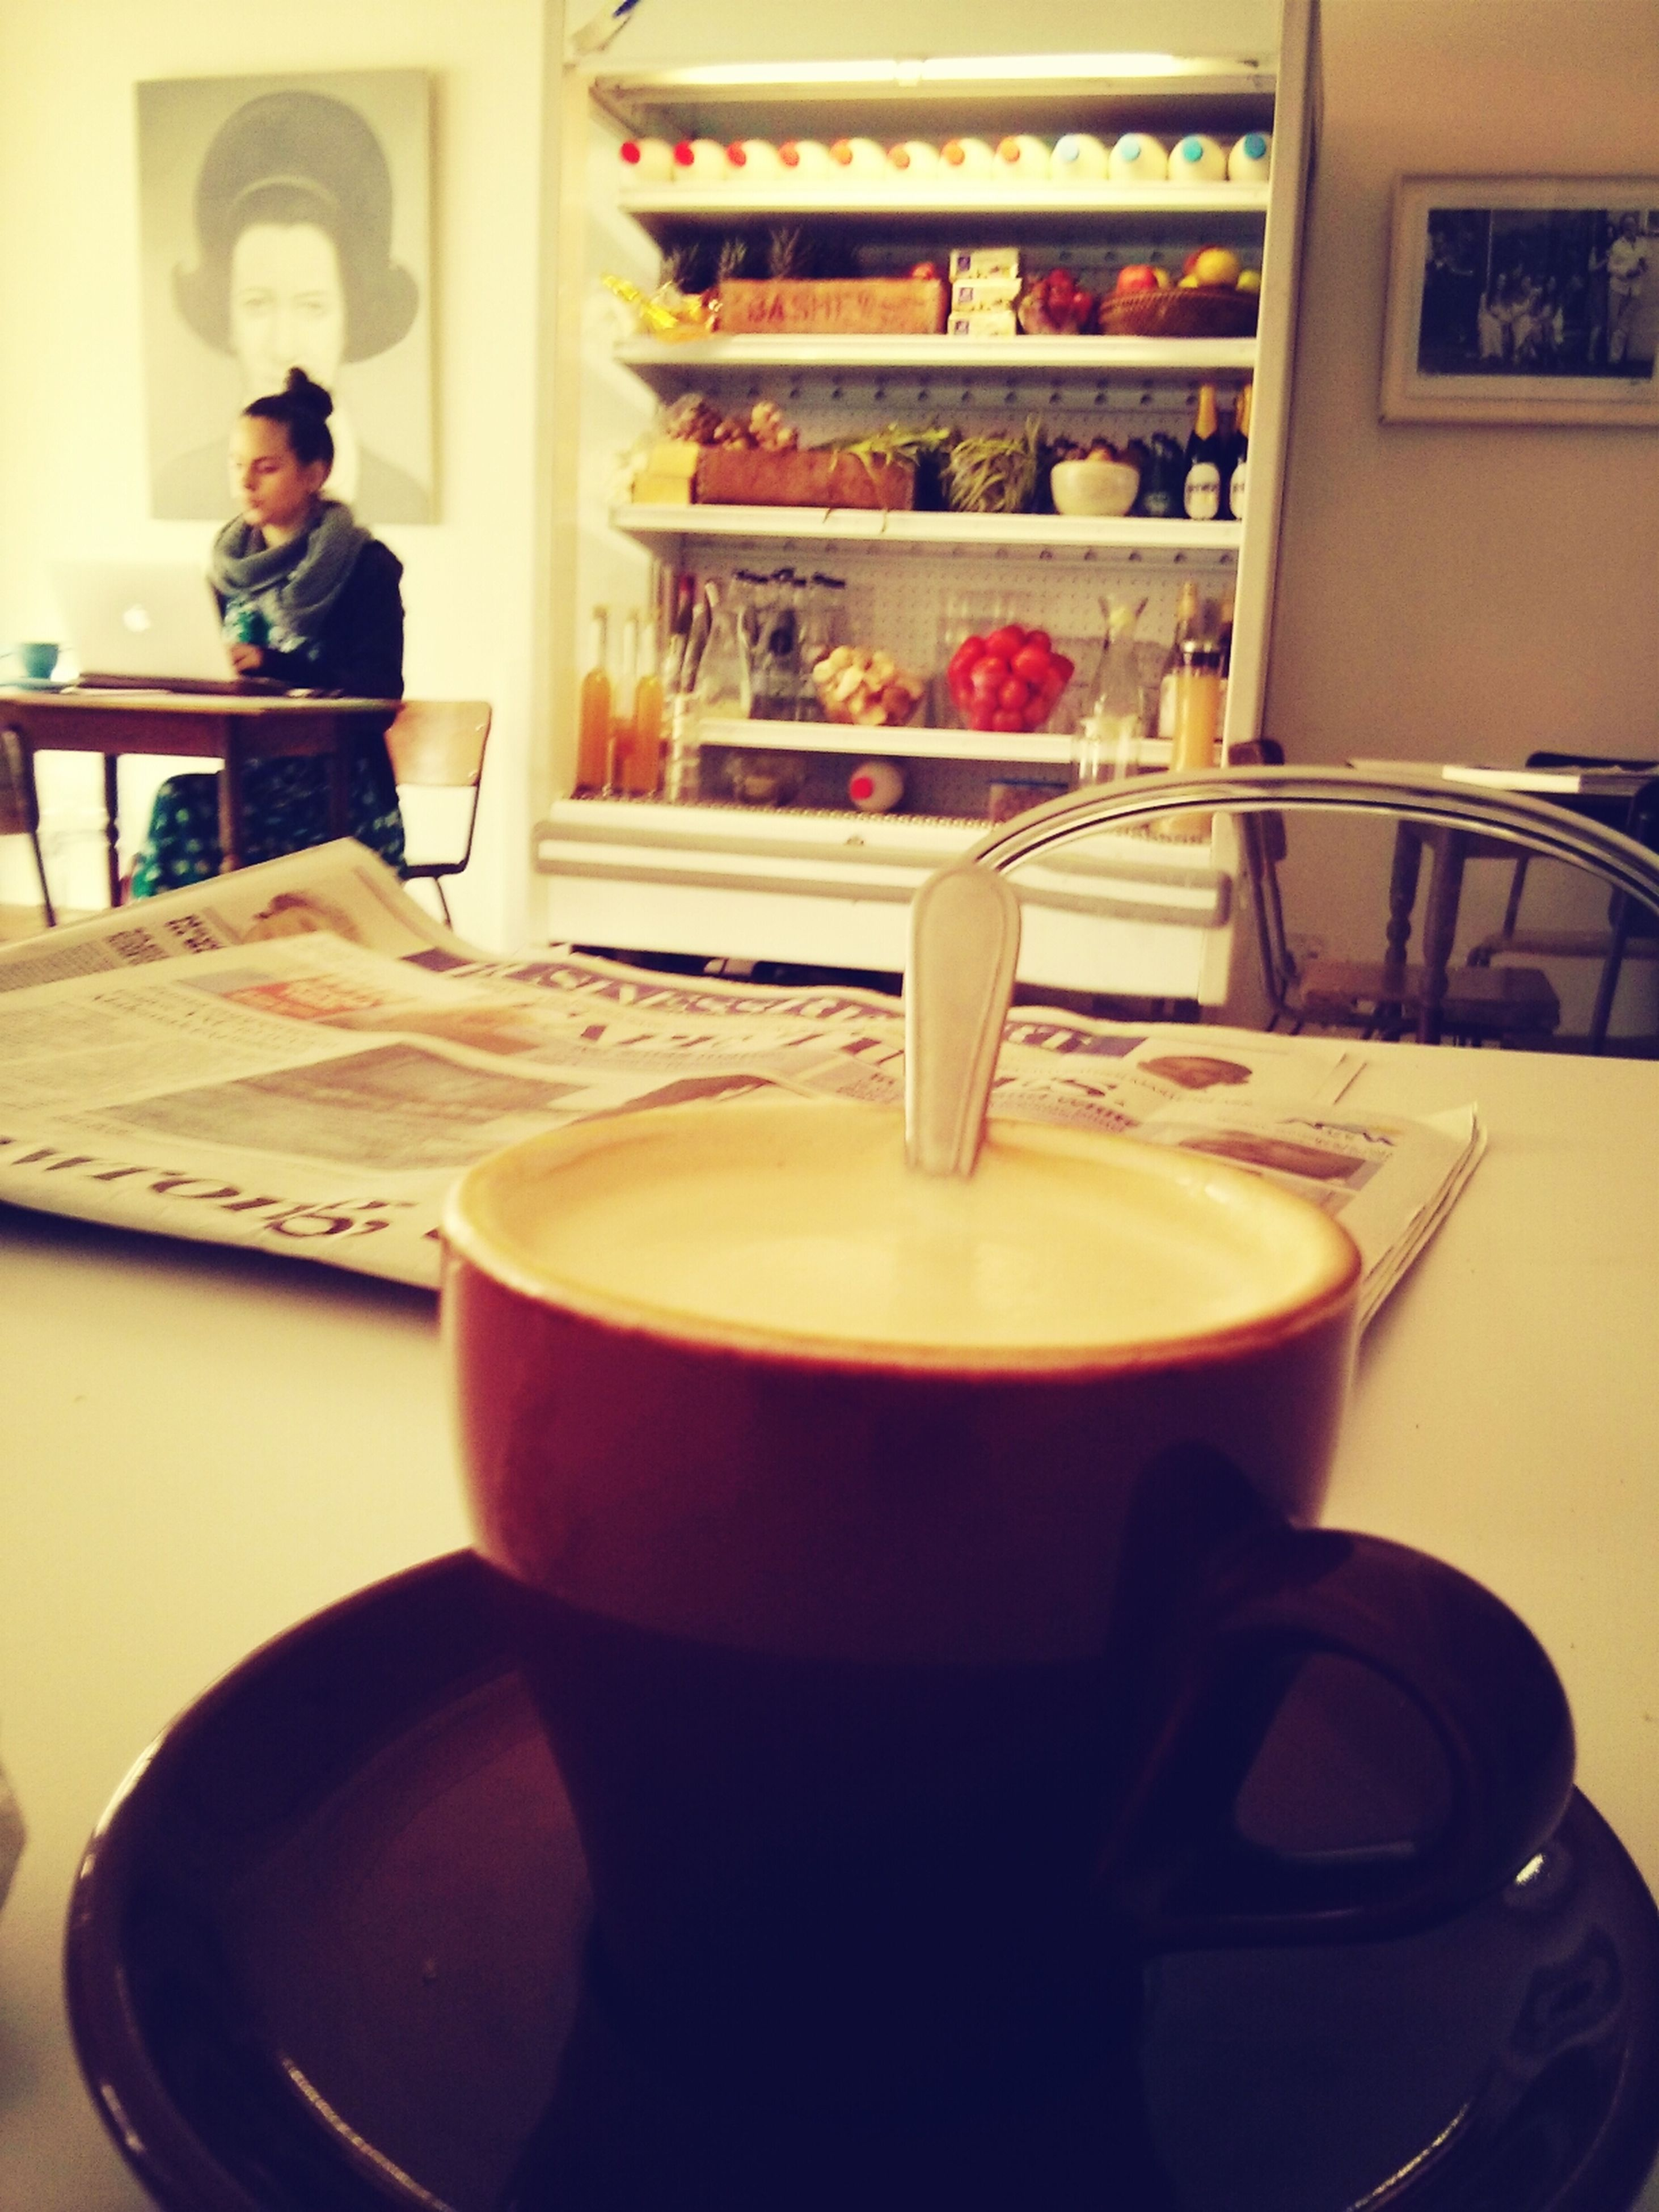 food and drink, indoors, drink, lifestyles, table, refreshment, sitting, coffee cup, leisure activity, casual clothing, coffee - drink, restaurant, freshness, food, holding, cafe, person